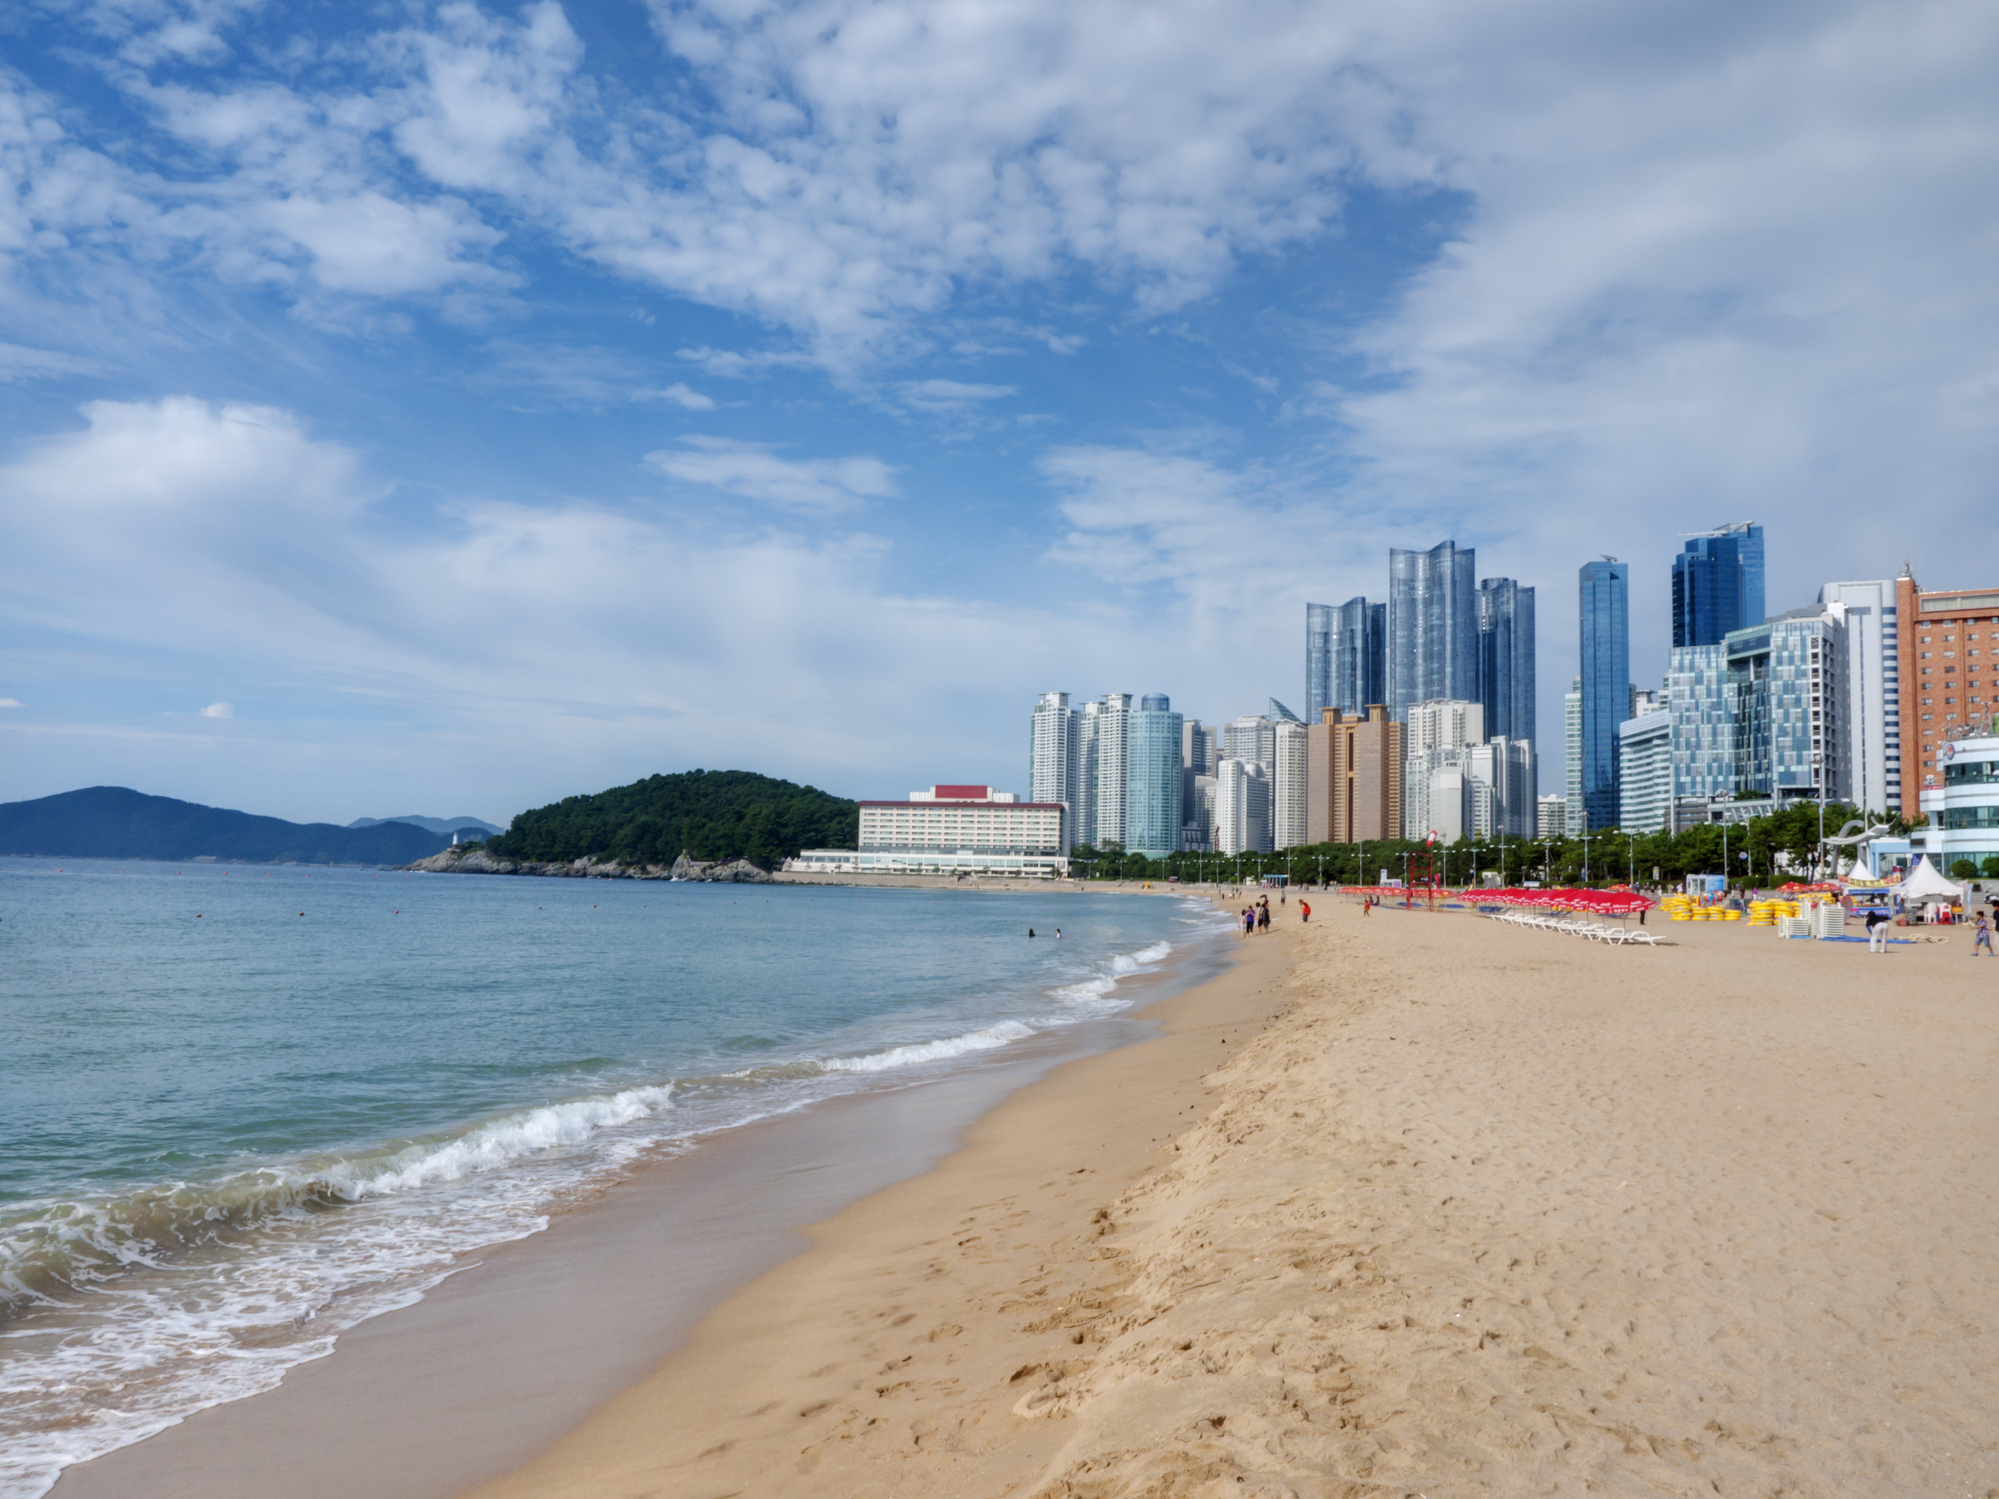 11. Spend an afternoon on Haeundae Beach - Haeundae is Busan's most famous beach and is a popular vacation destination for many Koreans and tourists alike during the summer. This beautiful white sand beach with a shallow bay is the perfect spot for sunbathing, swimming and people watching.